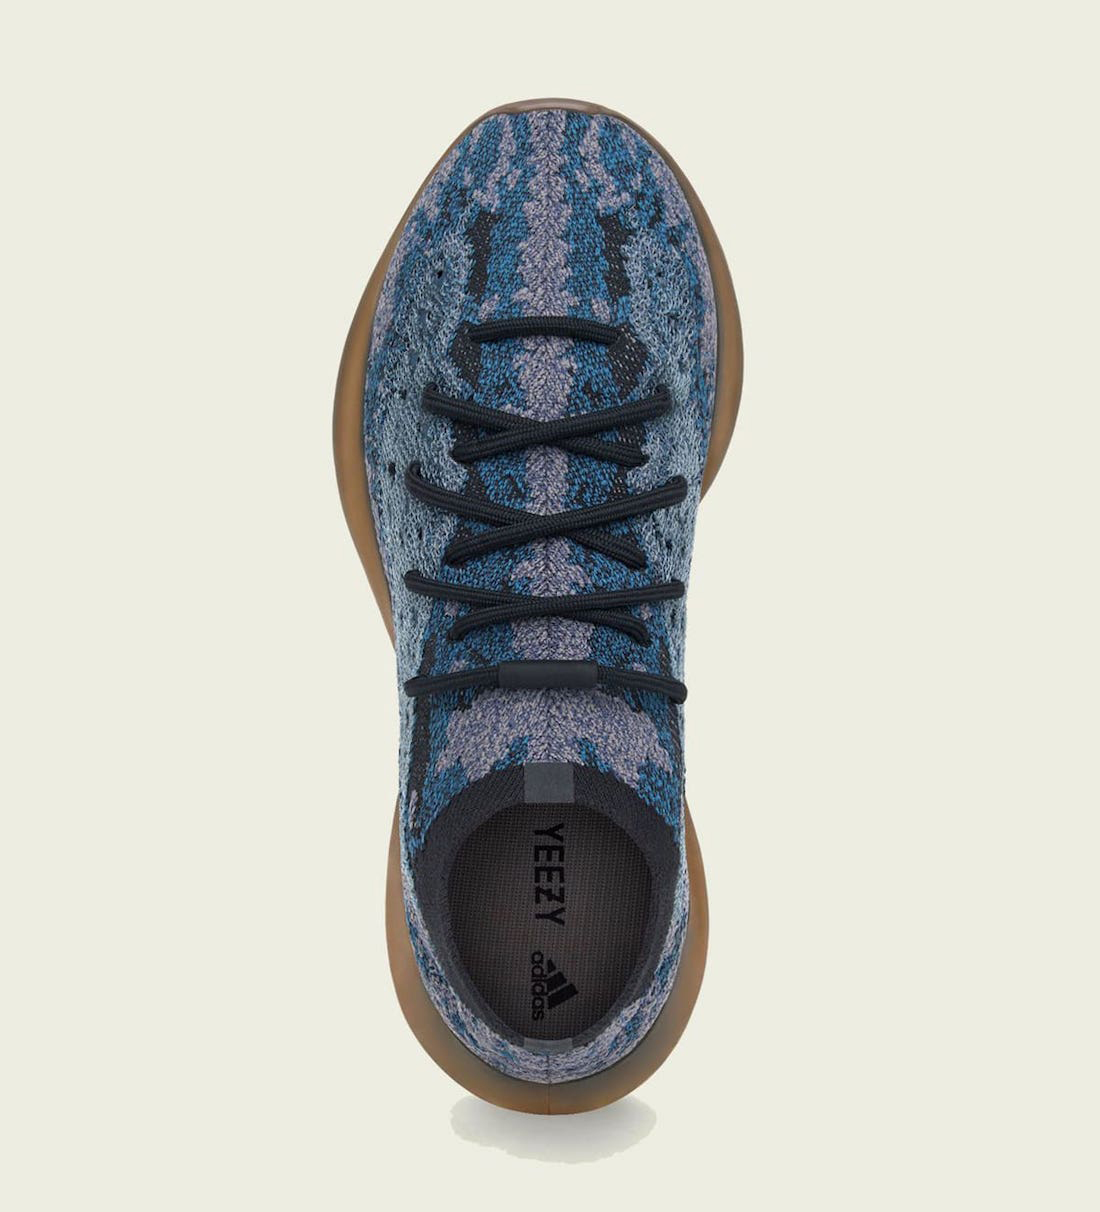 yeezy-380-covellite-release-date-price-resell-where-to-buy-2